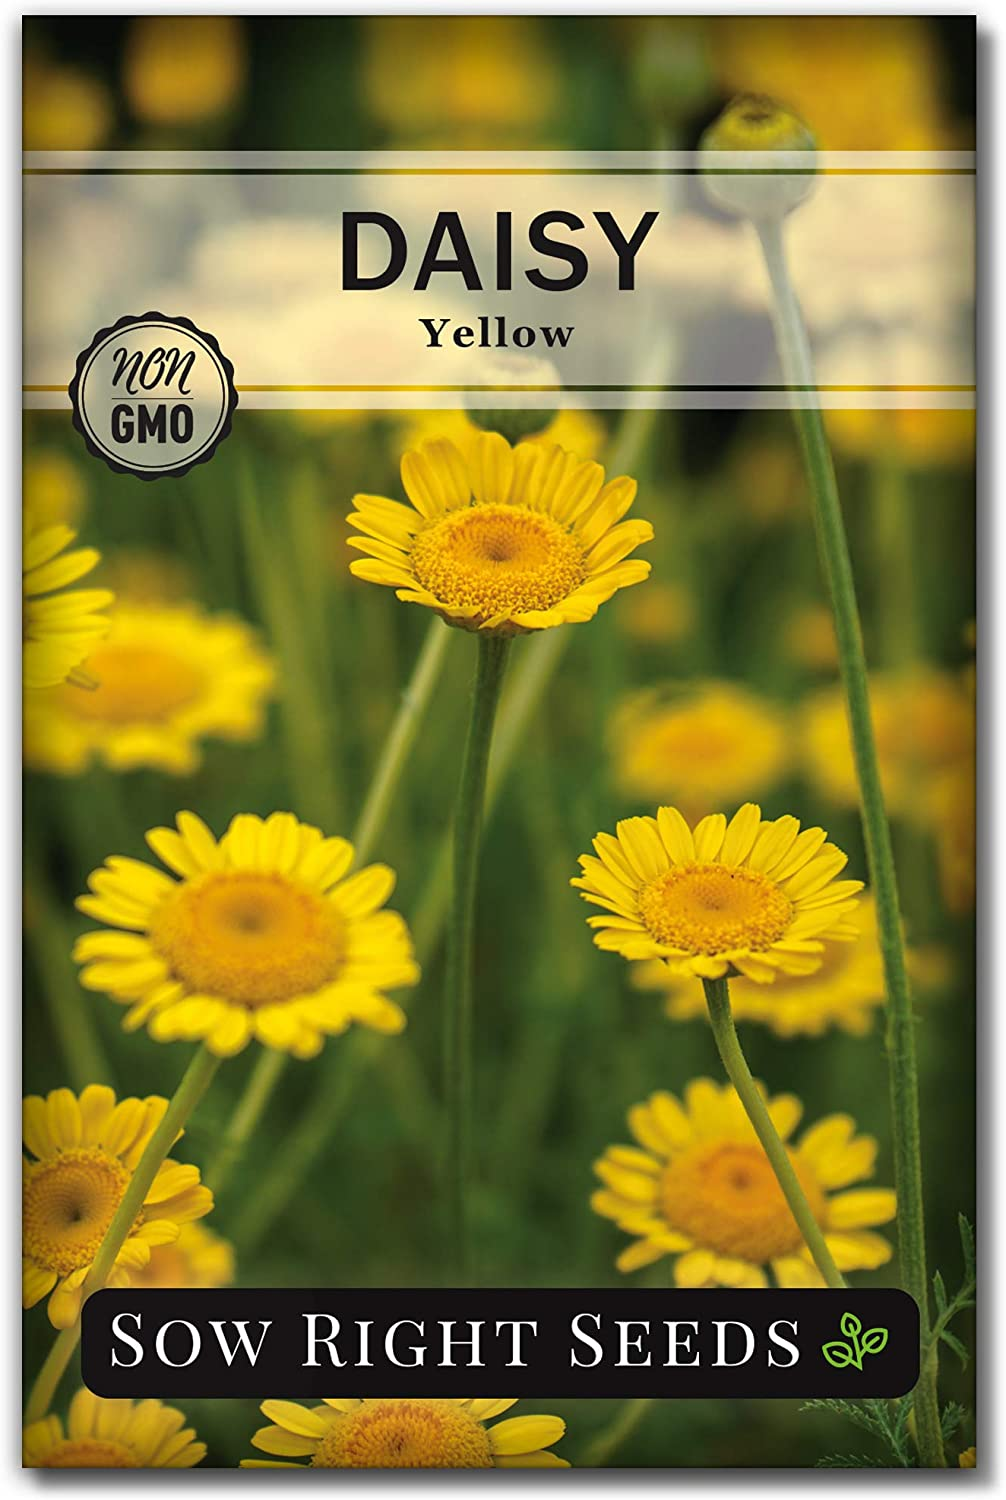 Over item handling Trust Sow Right Seeds - Yellow Beauti Planting for Daisy Flower